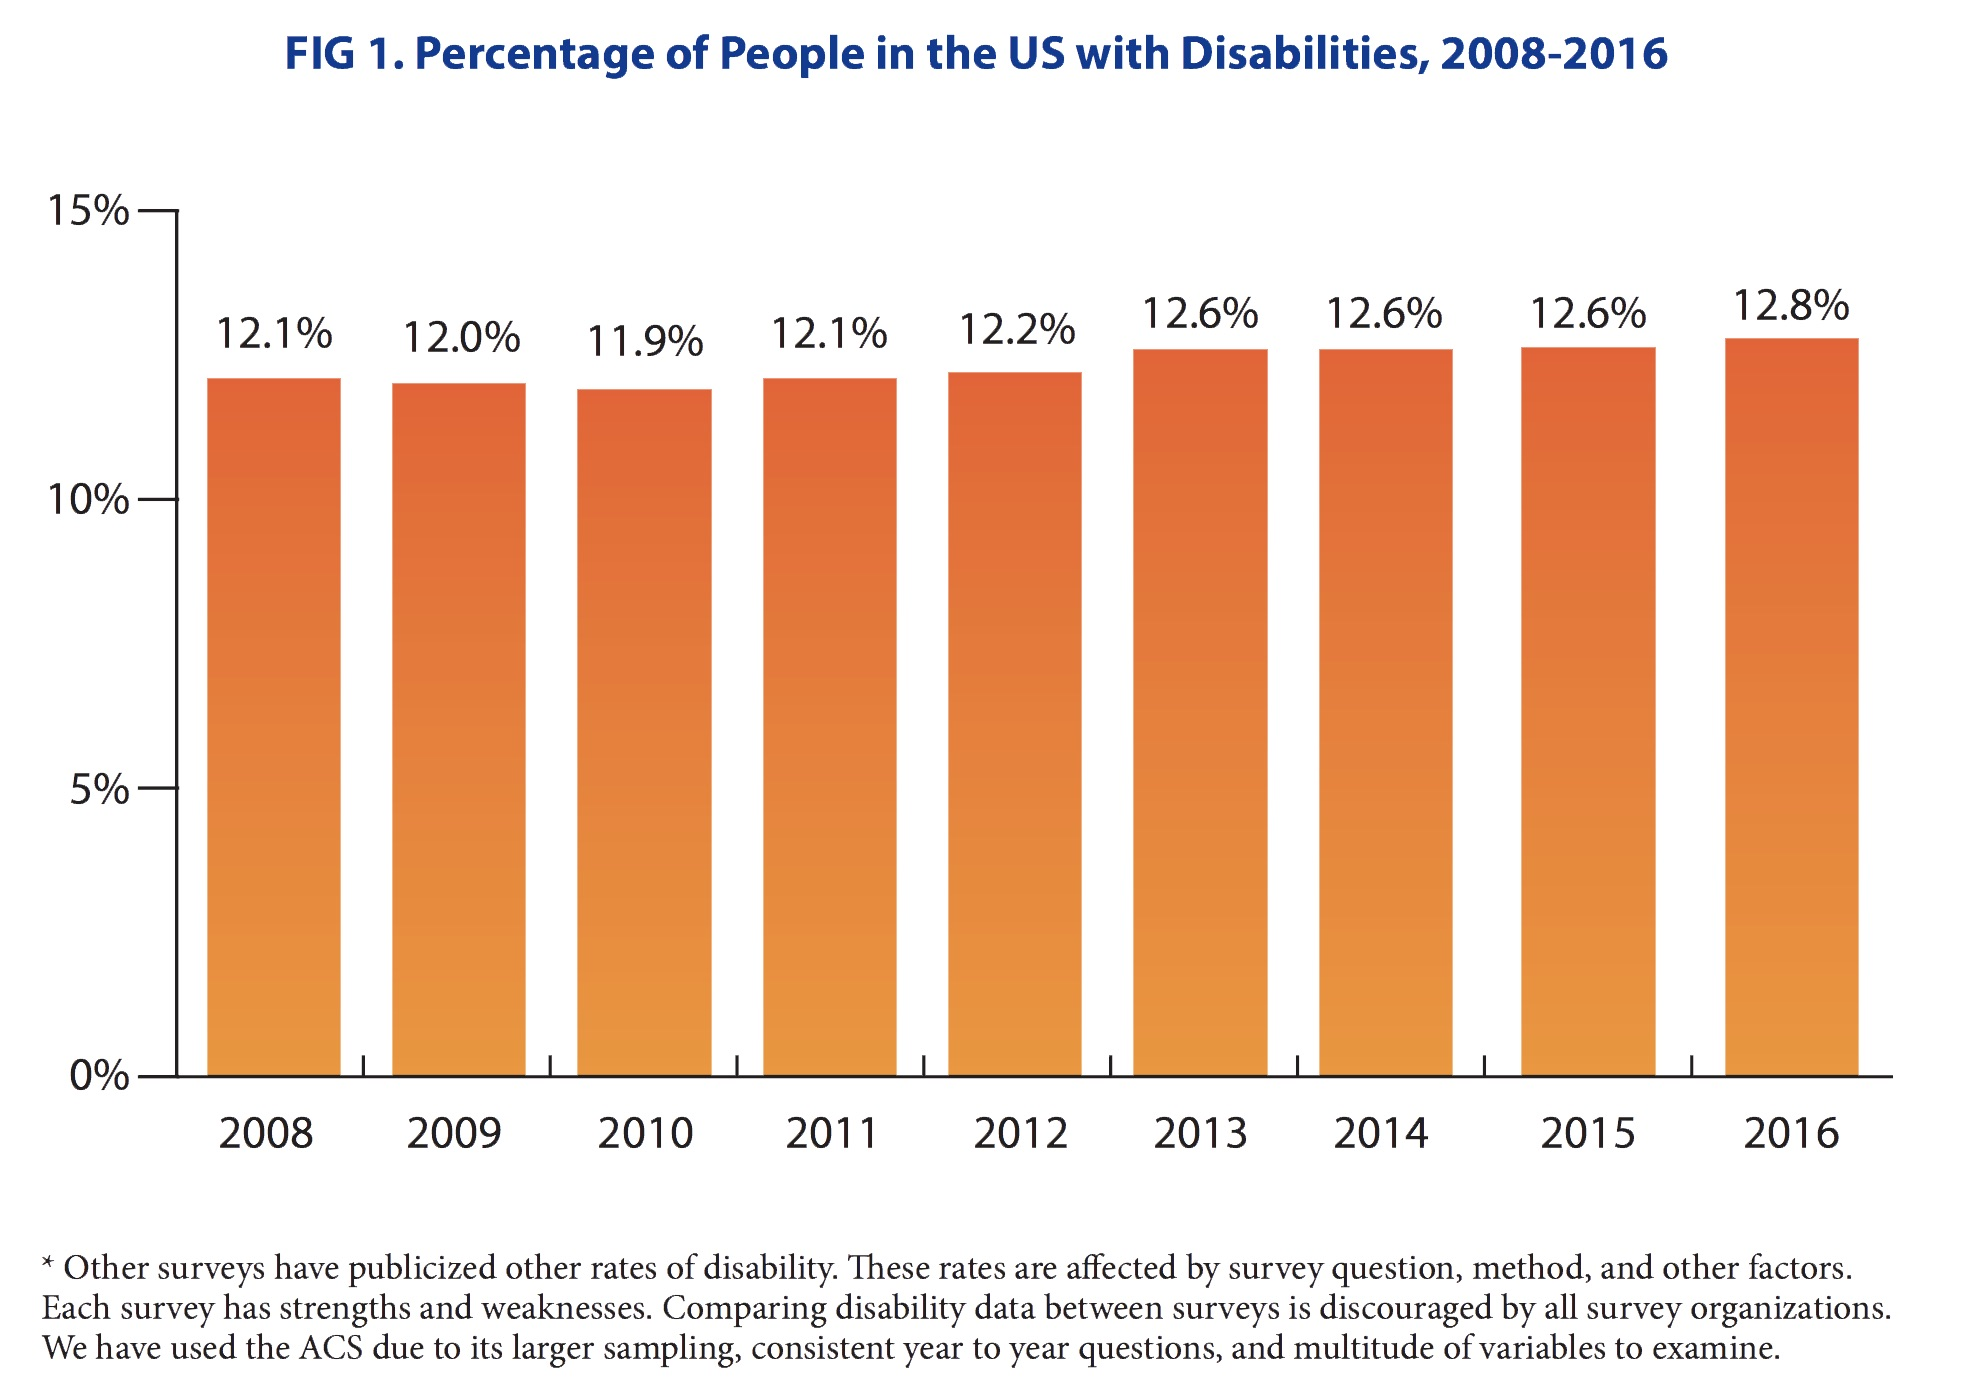 FIG 1. Percentage of People in the US with Disabilities, 2008-2016